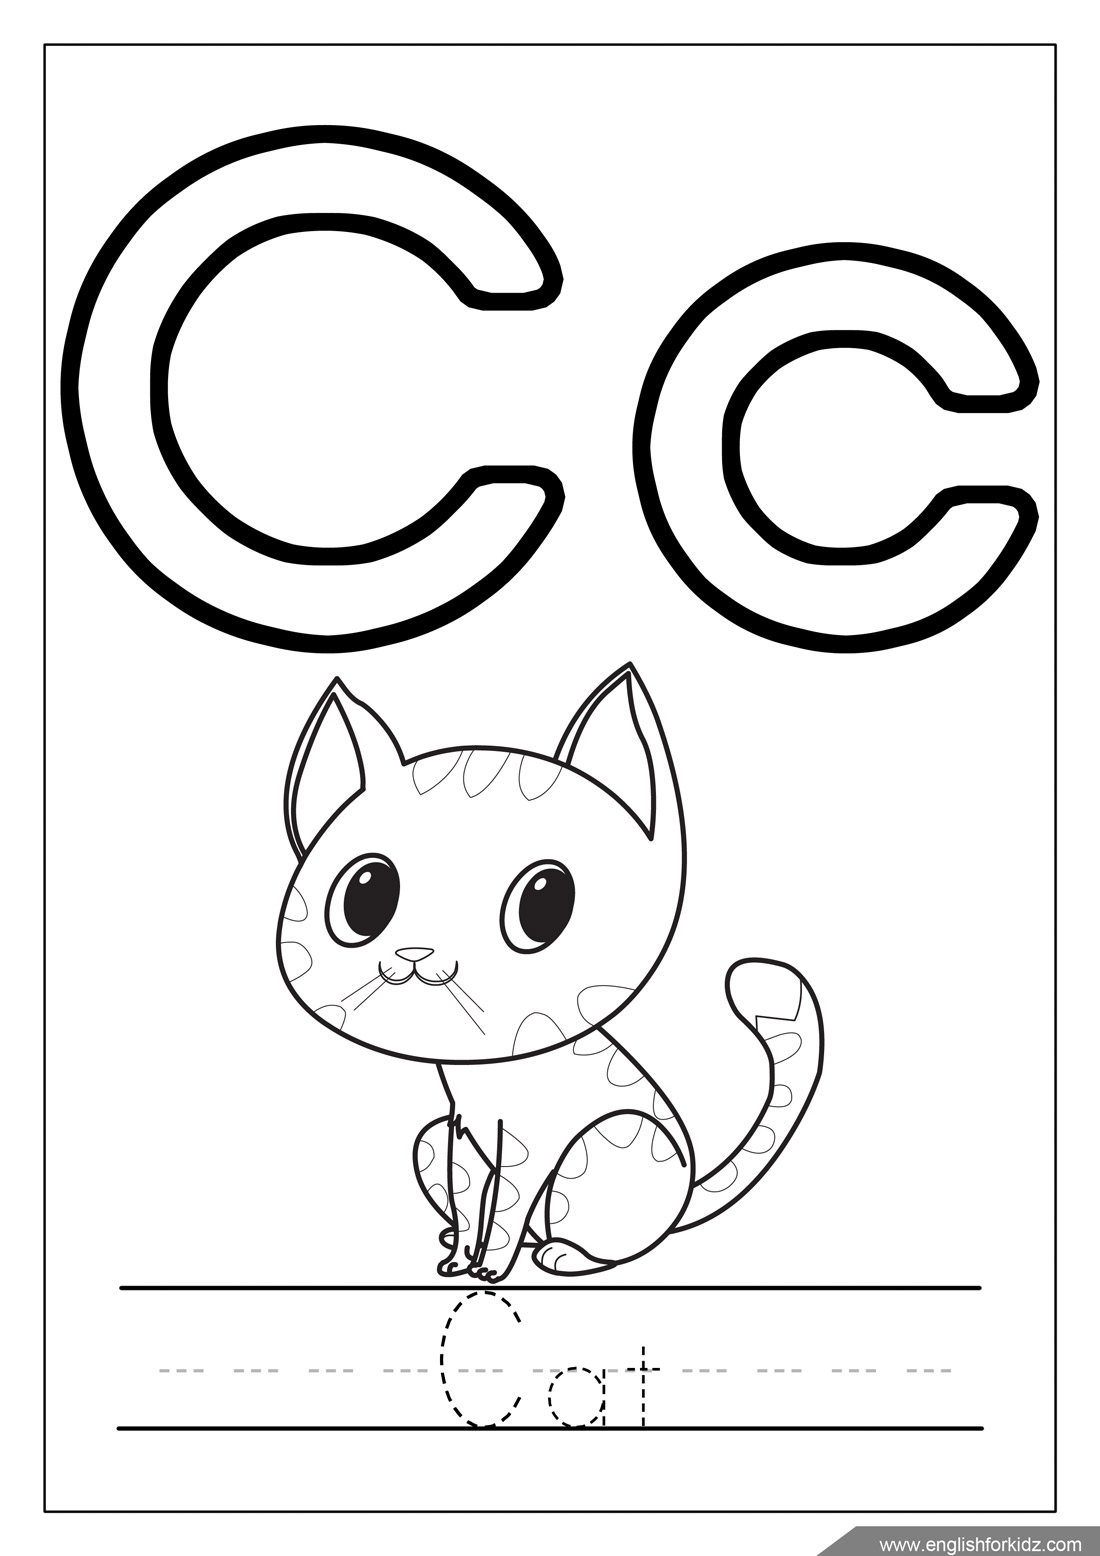 Printable Alphabet Coloring Pages Letters A J